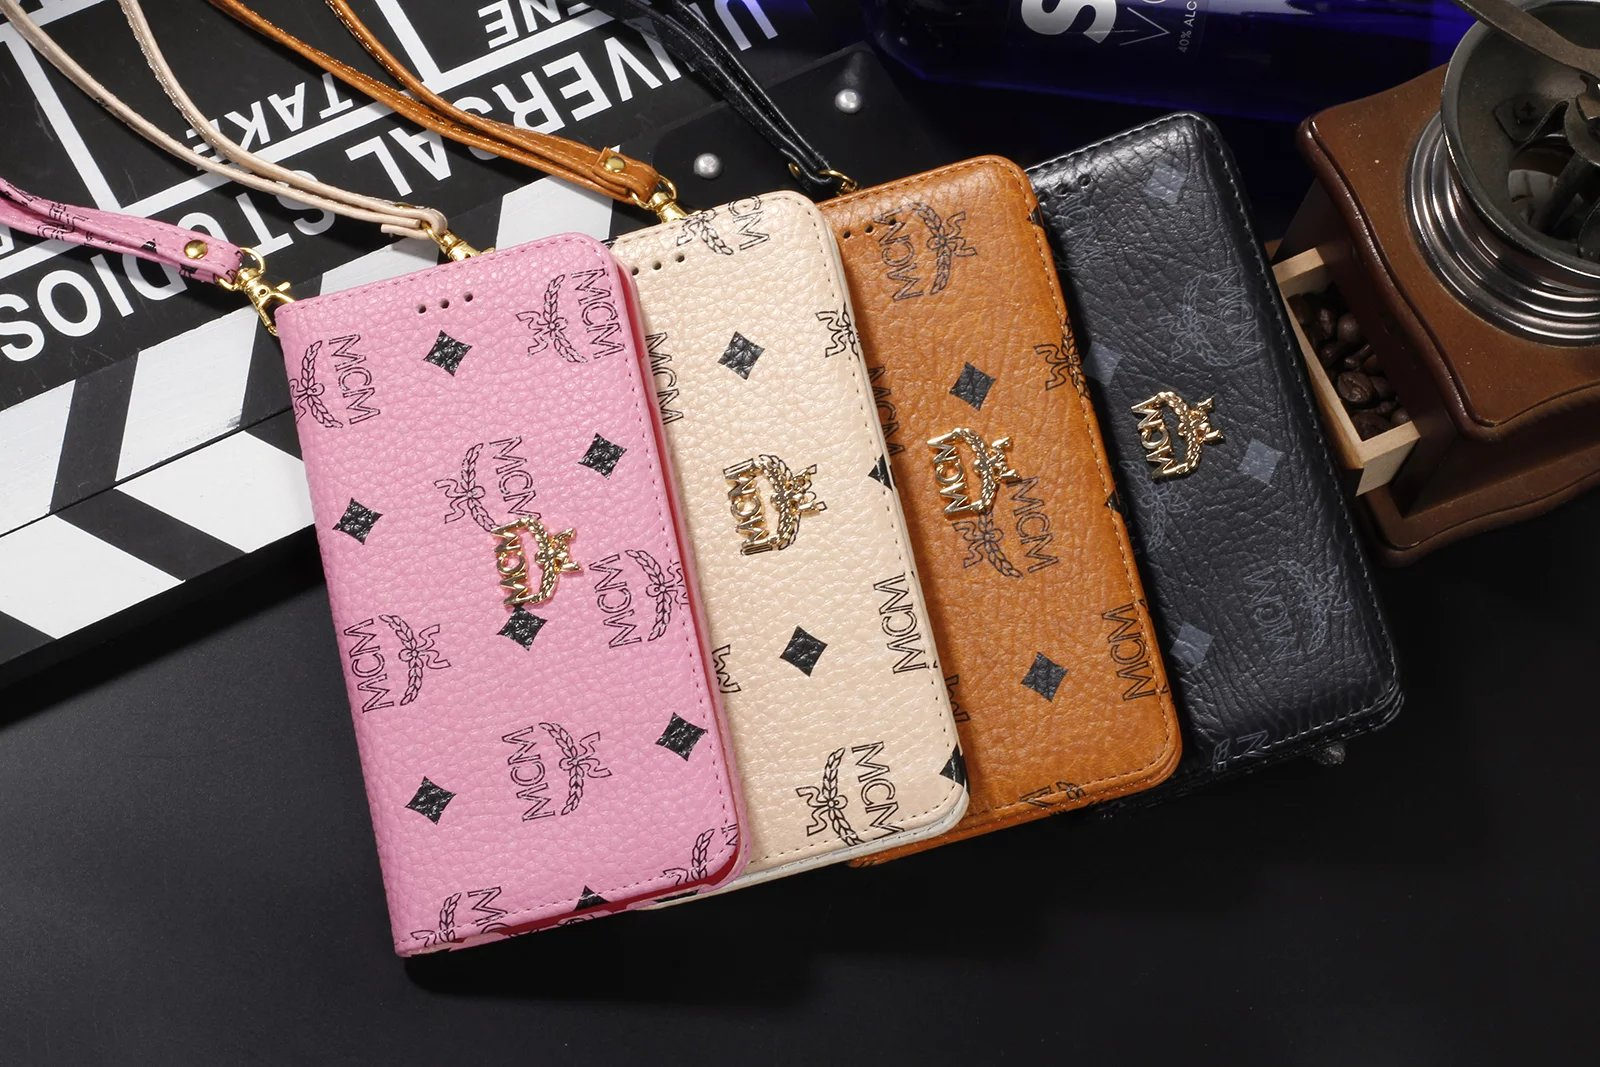 phone cases for iphone 6s Plus s iphone 6s Pluse cases fashion iphone6s plus case different iphone 6 cases sites for mobile covers telephone iphone case where to get custom phone cases iphone five s cases covers and cases